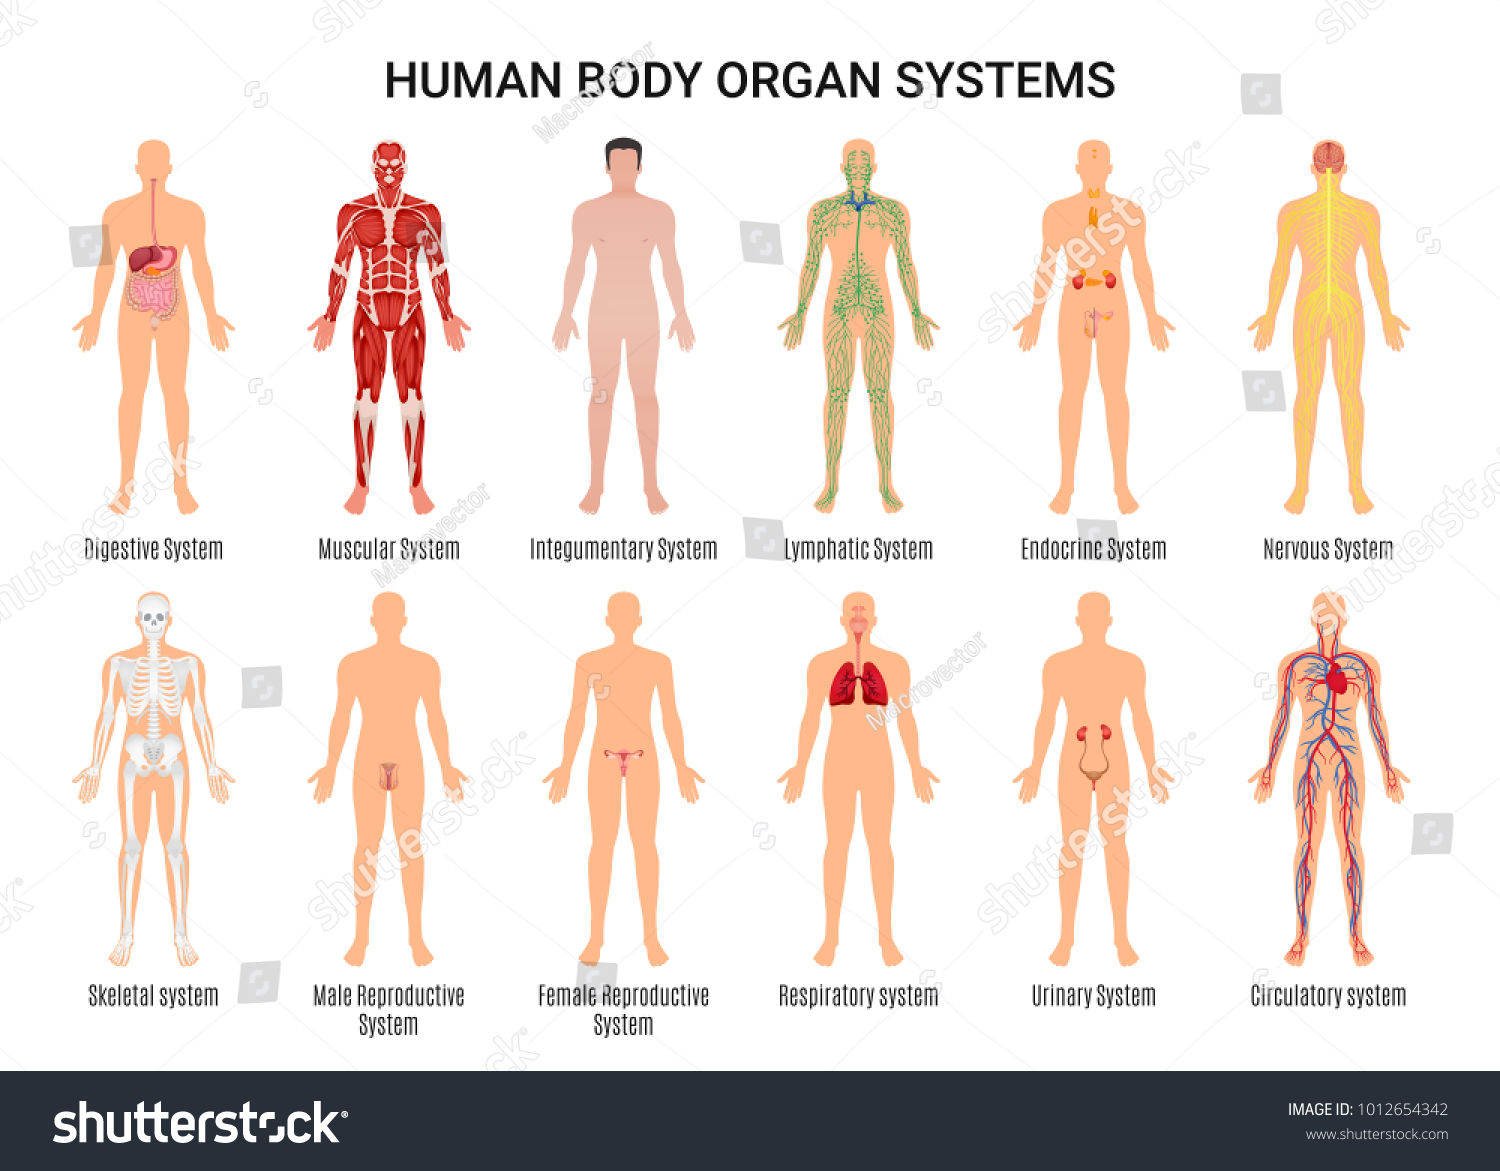 Main 12 Human Body Organ Systems Stock Vector (2018) 1012654342 ...